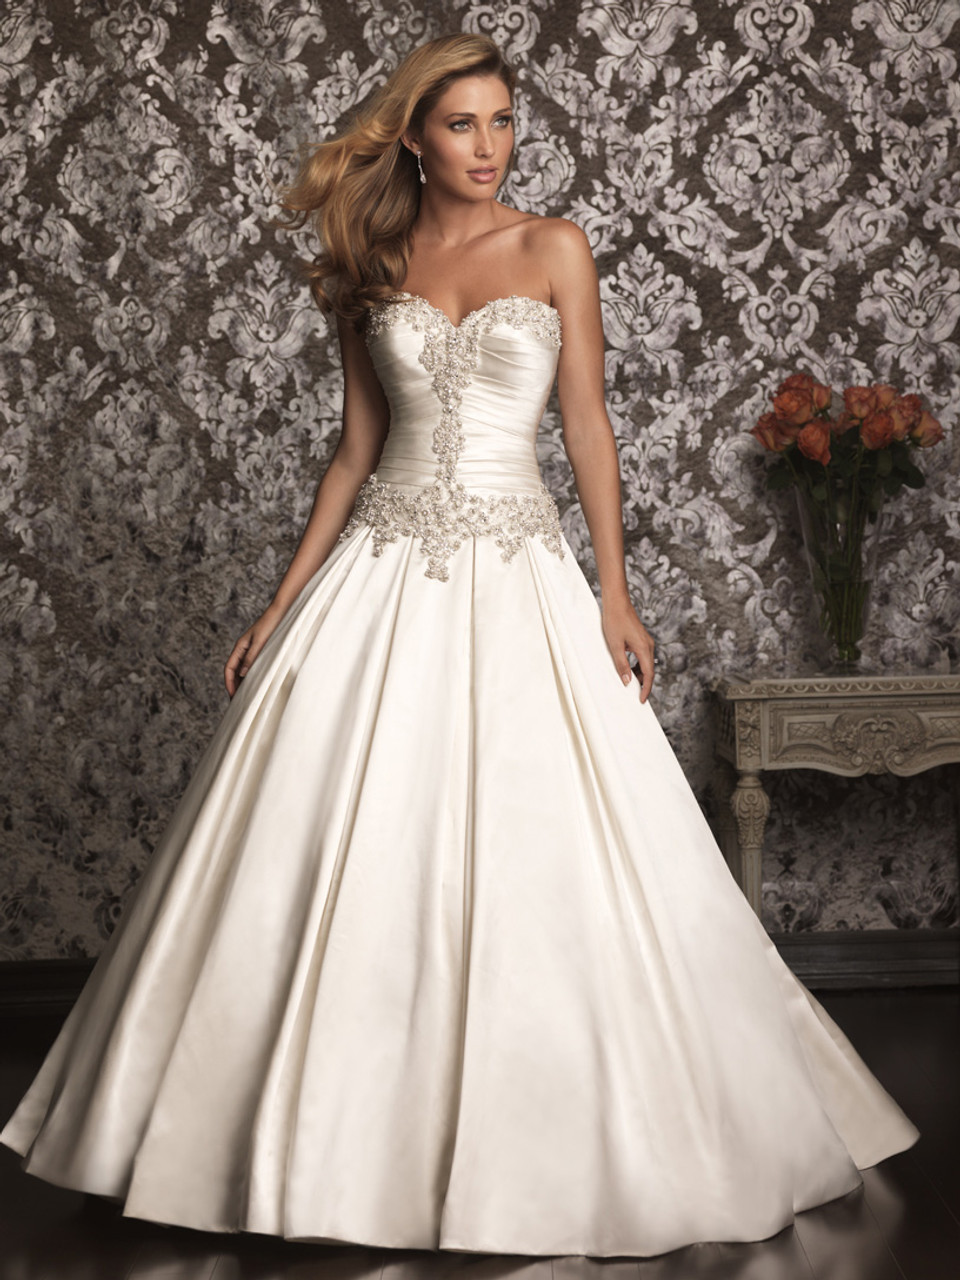 Strapless Allure Bridal Ball Gown Wedding Dress 9003 - Dimitra Designs